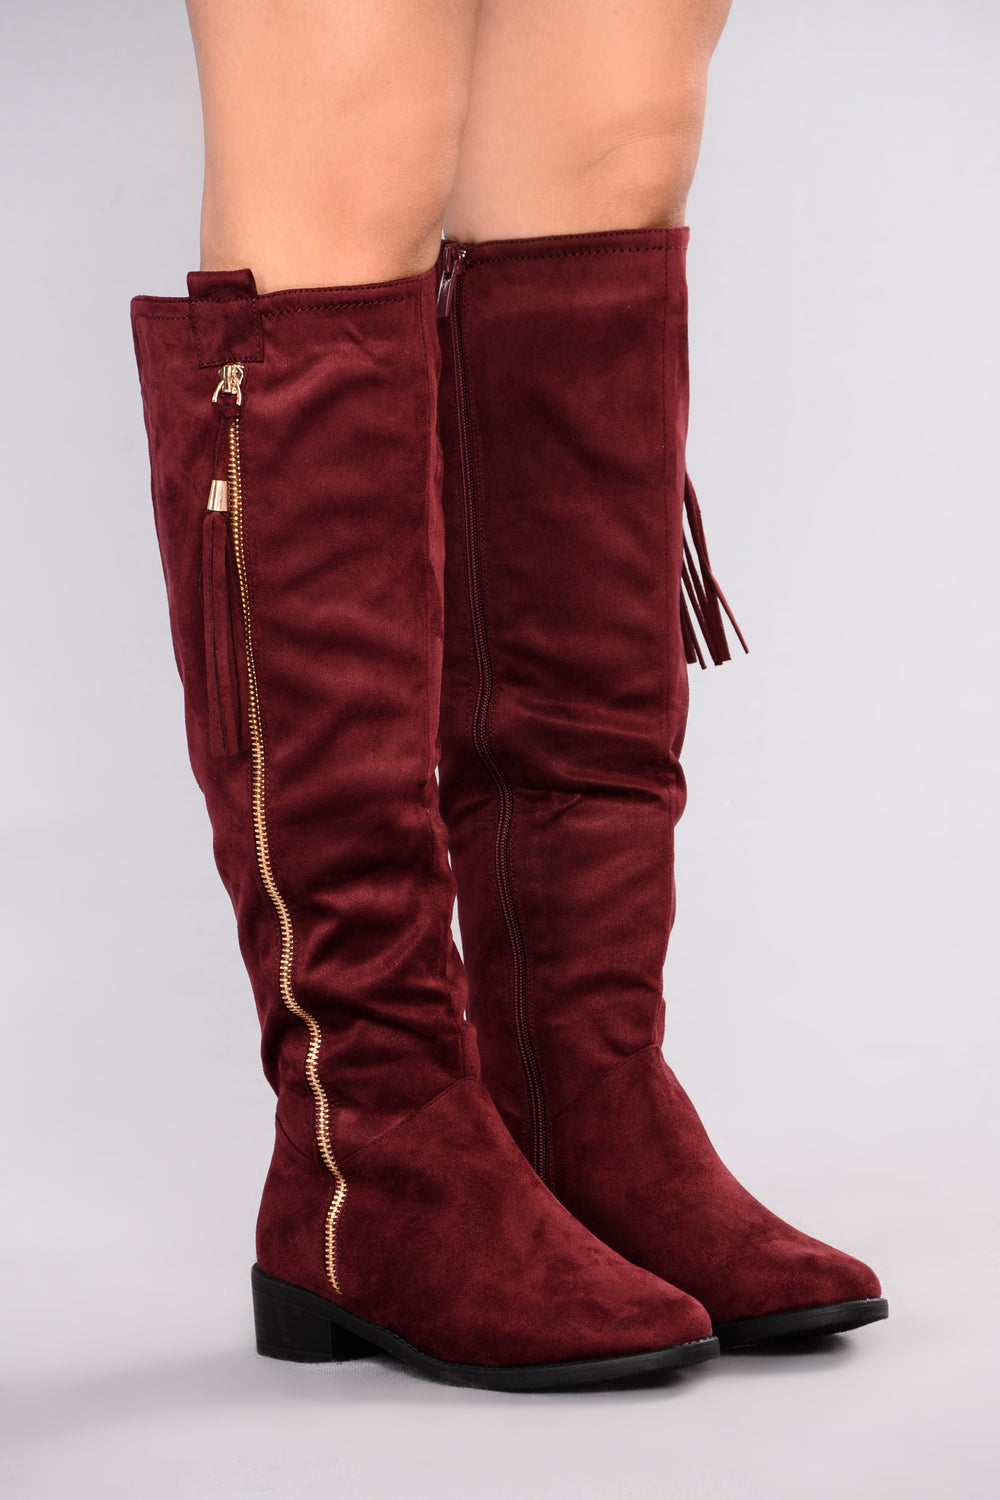 Amorie Flat Boot - Wine